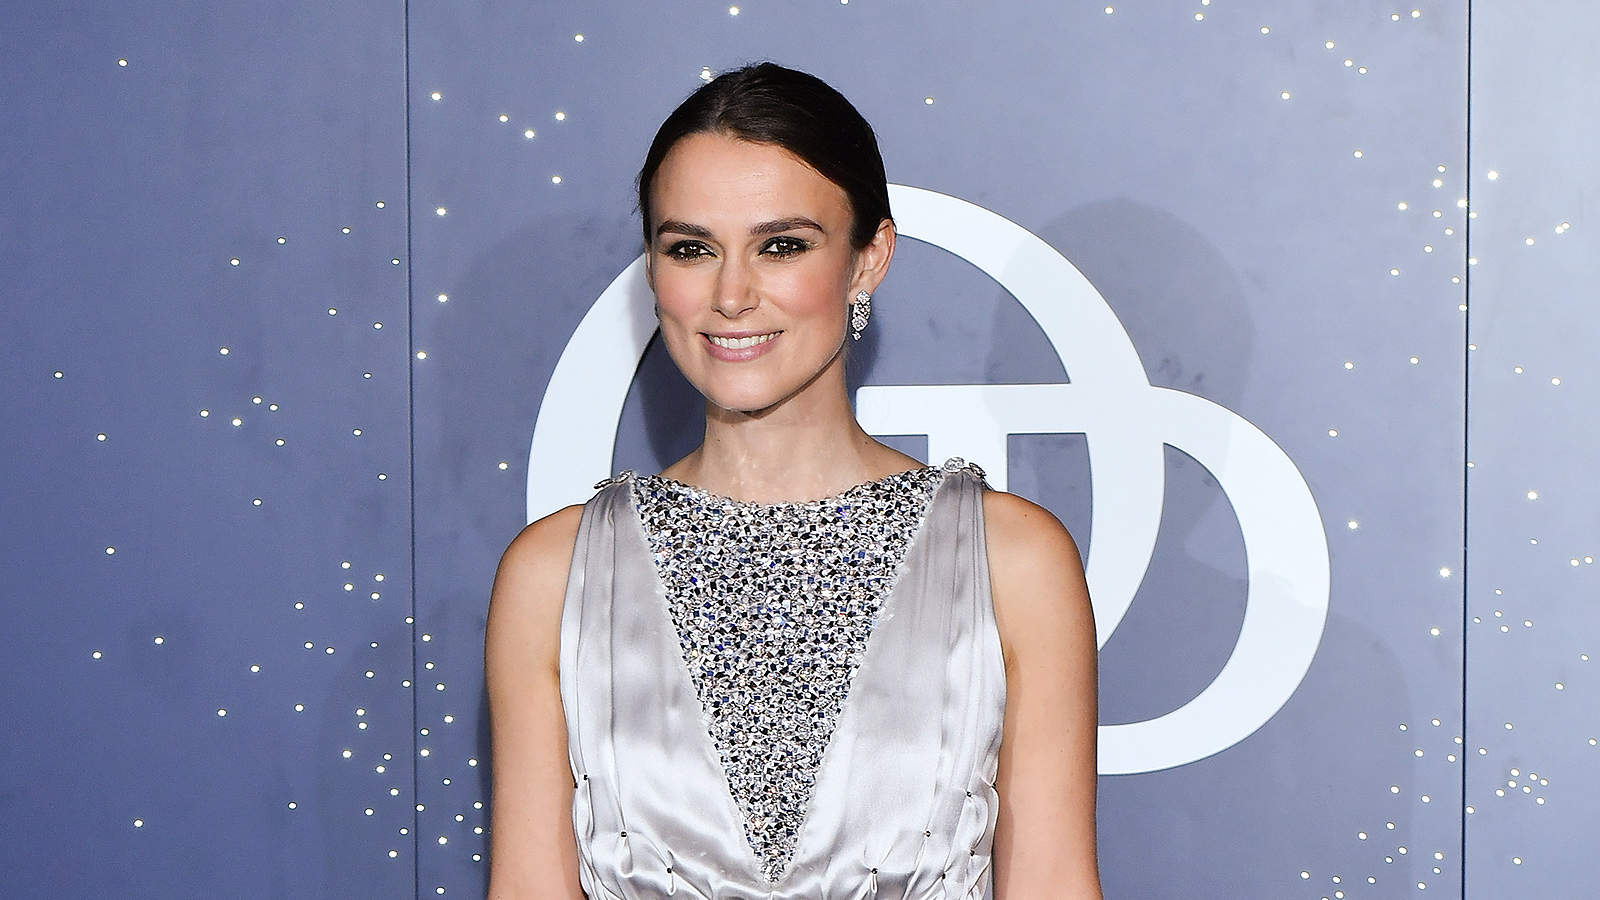 Keira Knightley Reveals She Had a 'Mental Breakdown' at 22: It Was a 'Battle Every Day'